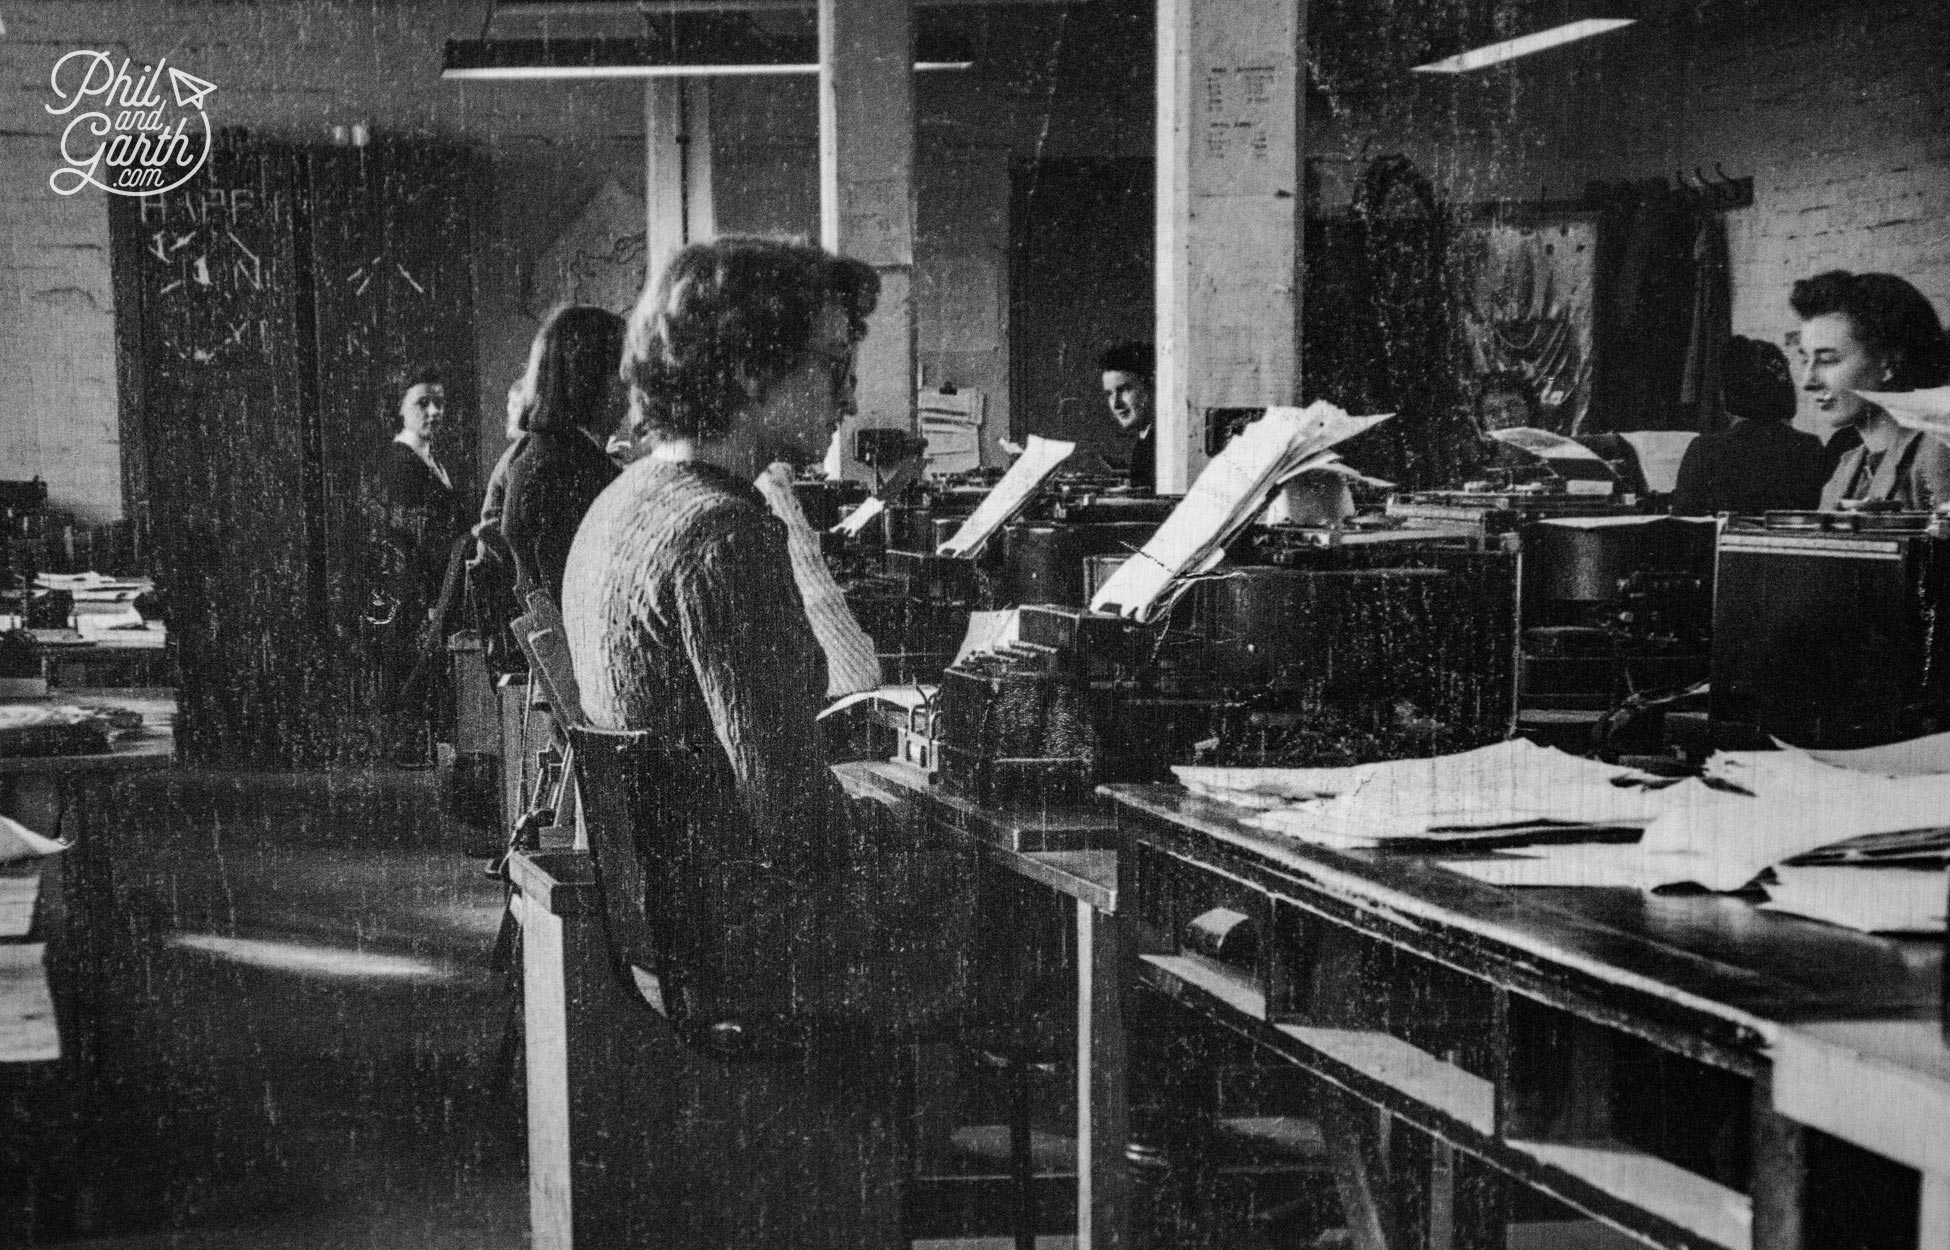 Inside Hut 6 deciphering messages on Typex machines